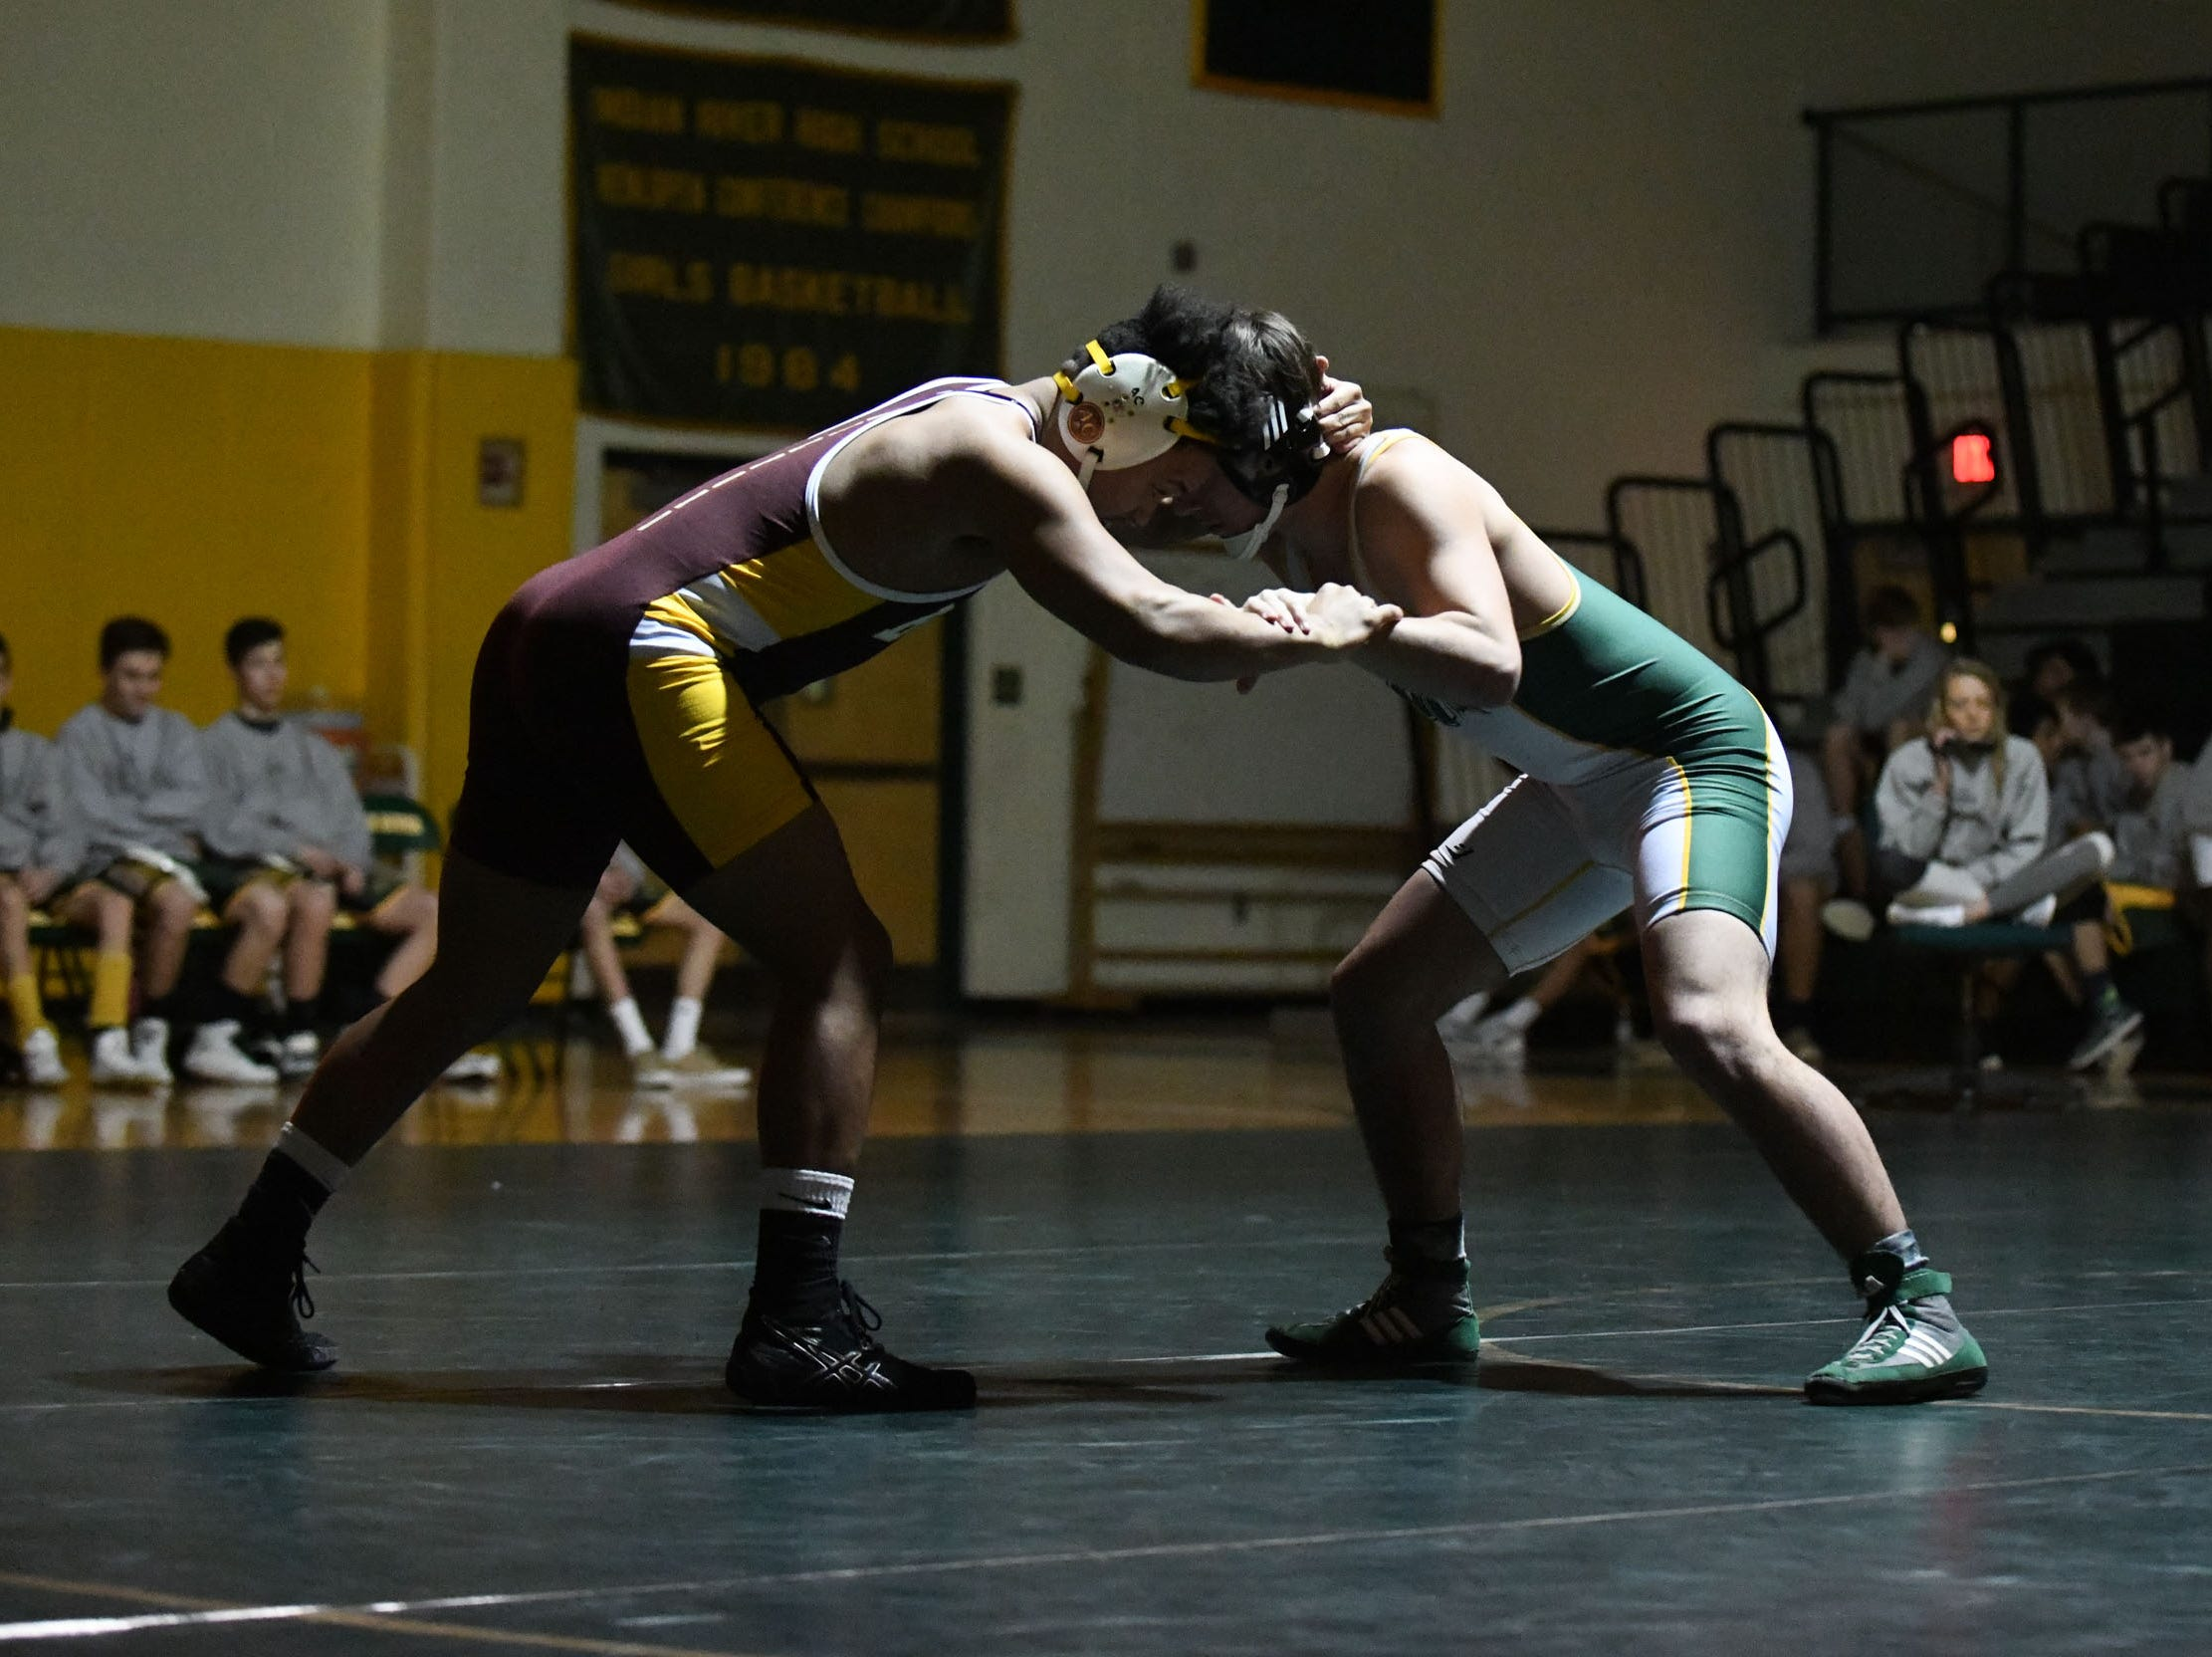 Indian River's William Keller battled Milford's Rafael Mejia during the 170lb match on Thursday, Jan 17, 2019 in Dagsboro, Del. Milford won the match 53-15.